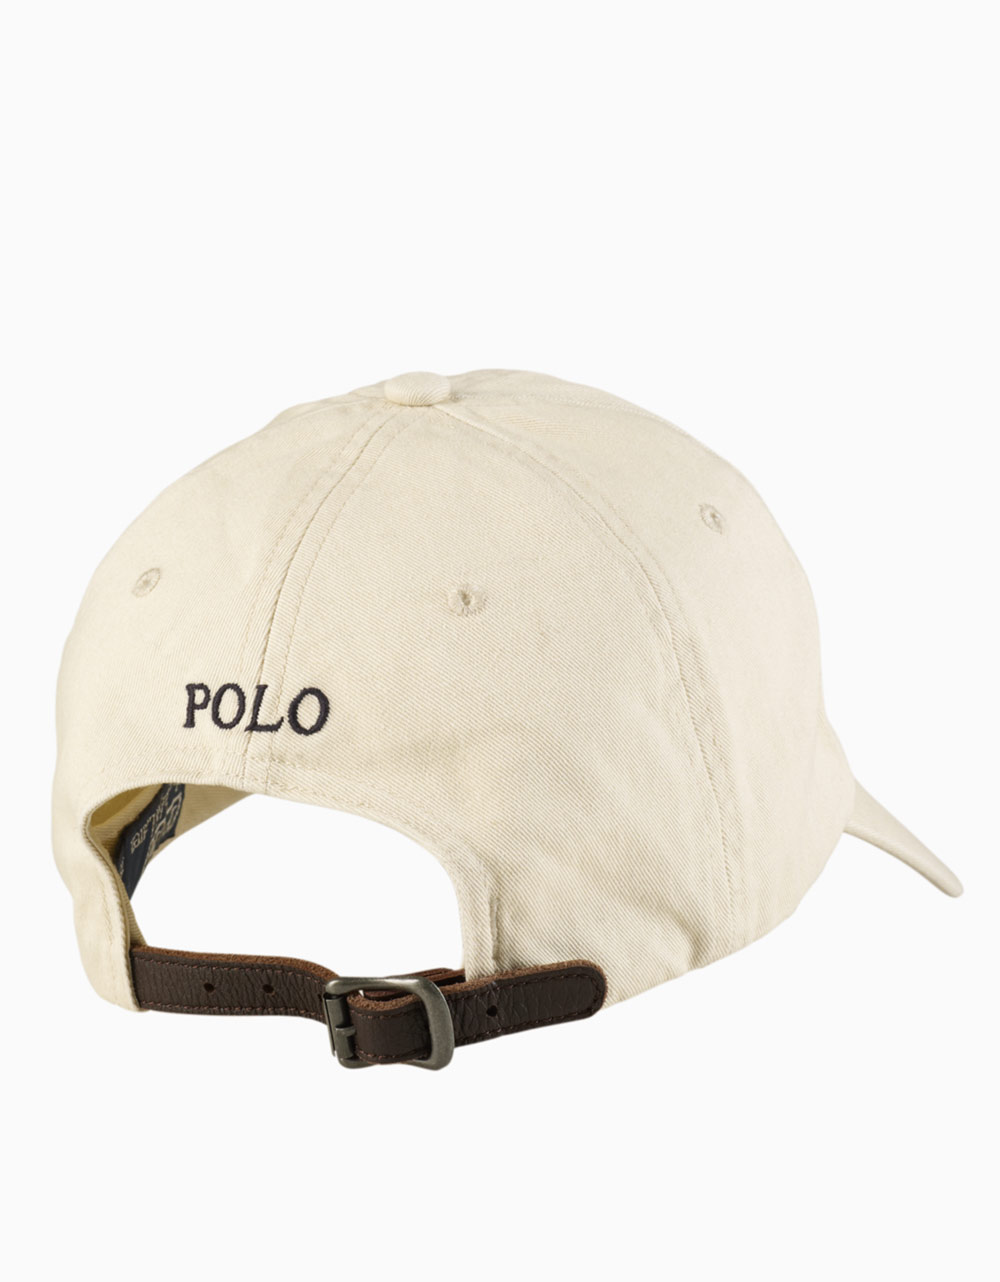 polo ralph lauren classic chino sport cap in natural for men lyst. Black Bedroom Furniture Sets. Home Design Ideas